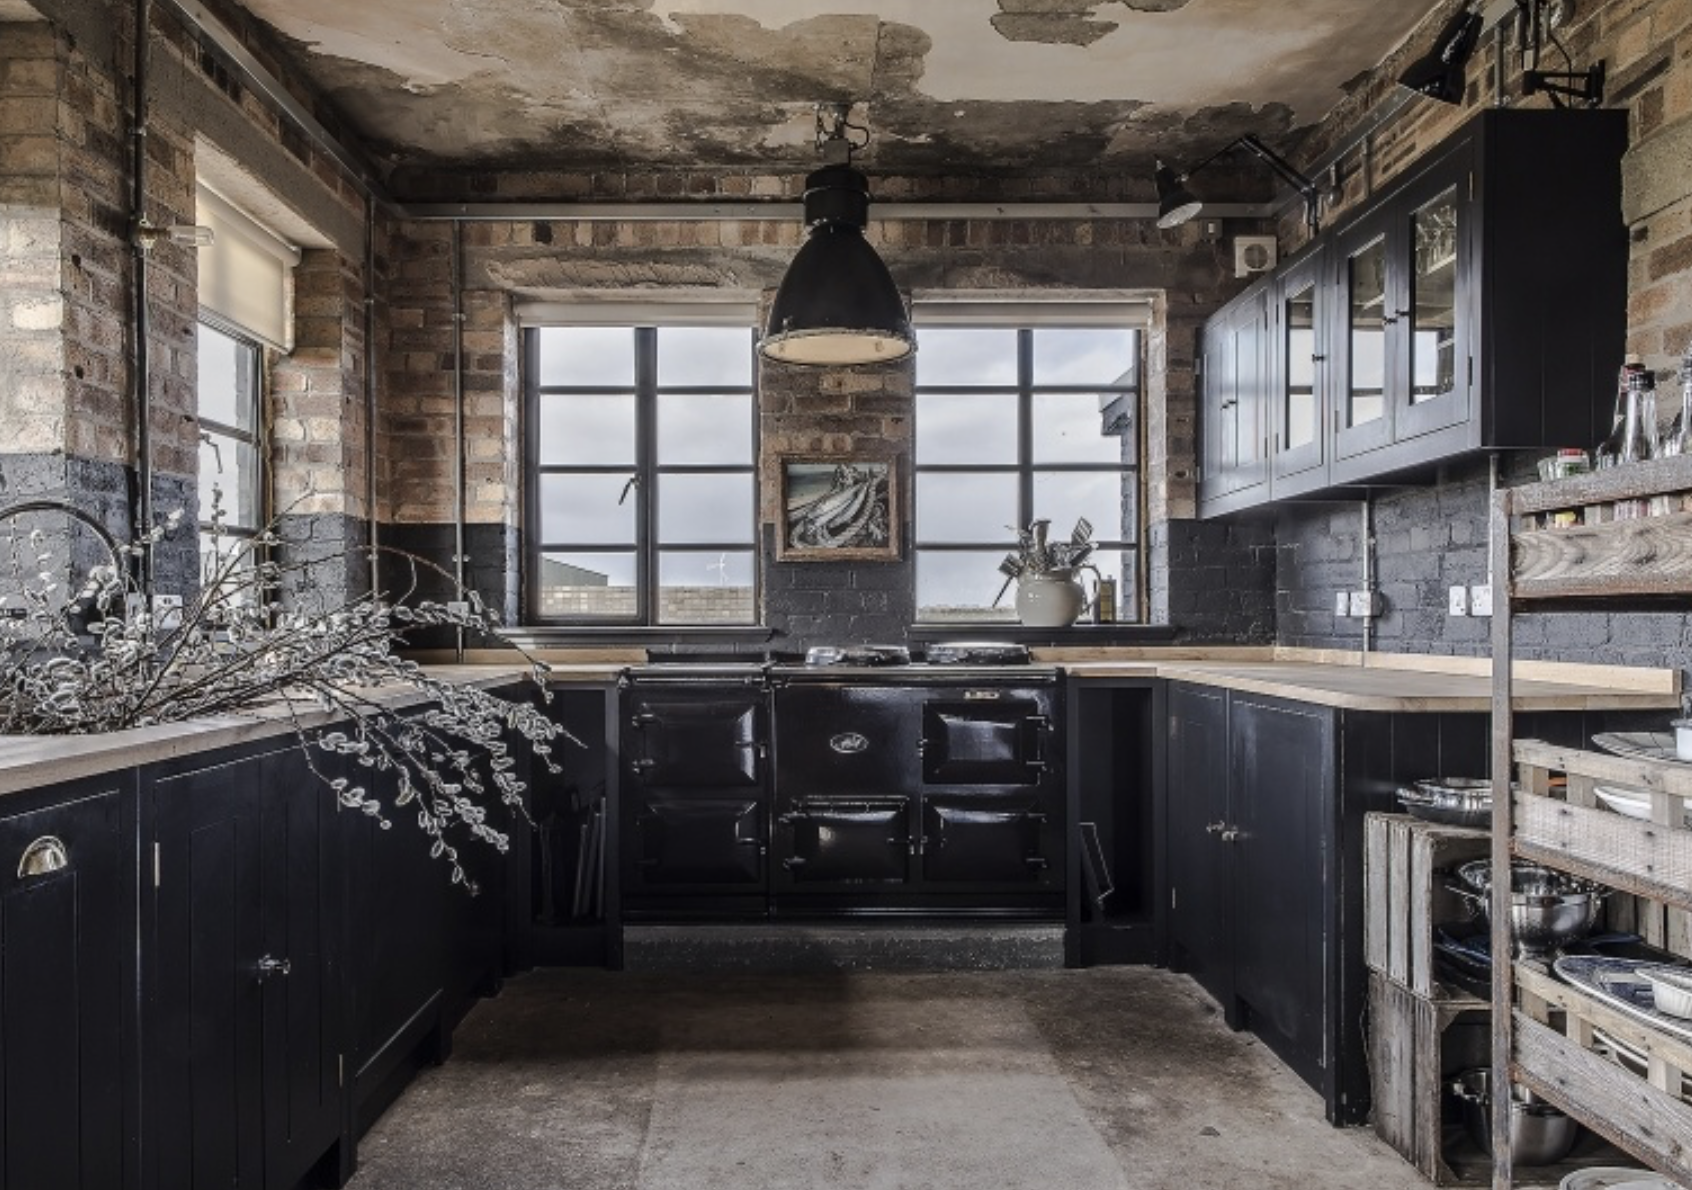 Spooky kitchen built inside an abandoned WWII air traffic